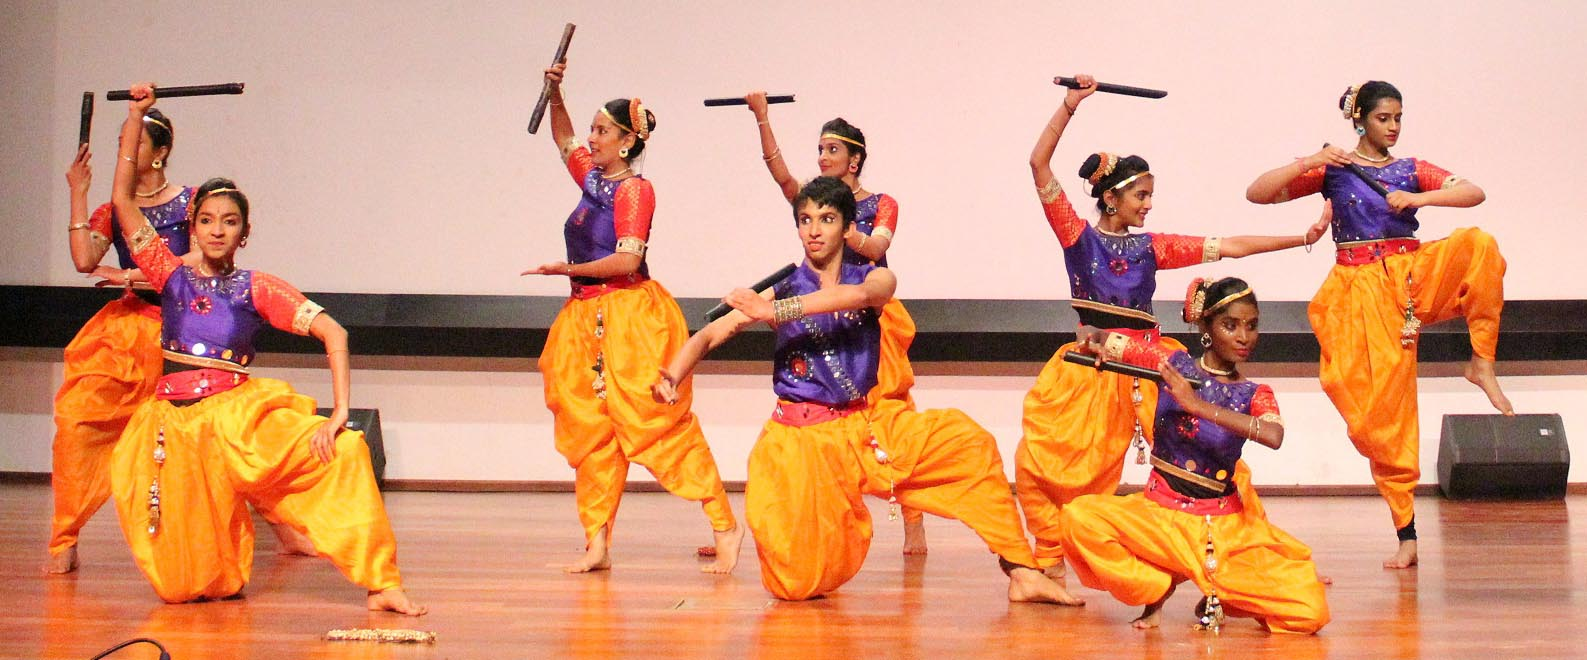 Students perform on stage during Swayam 2018 event at MVJ College of Engineering